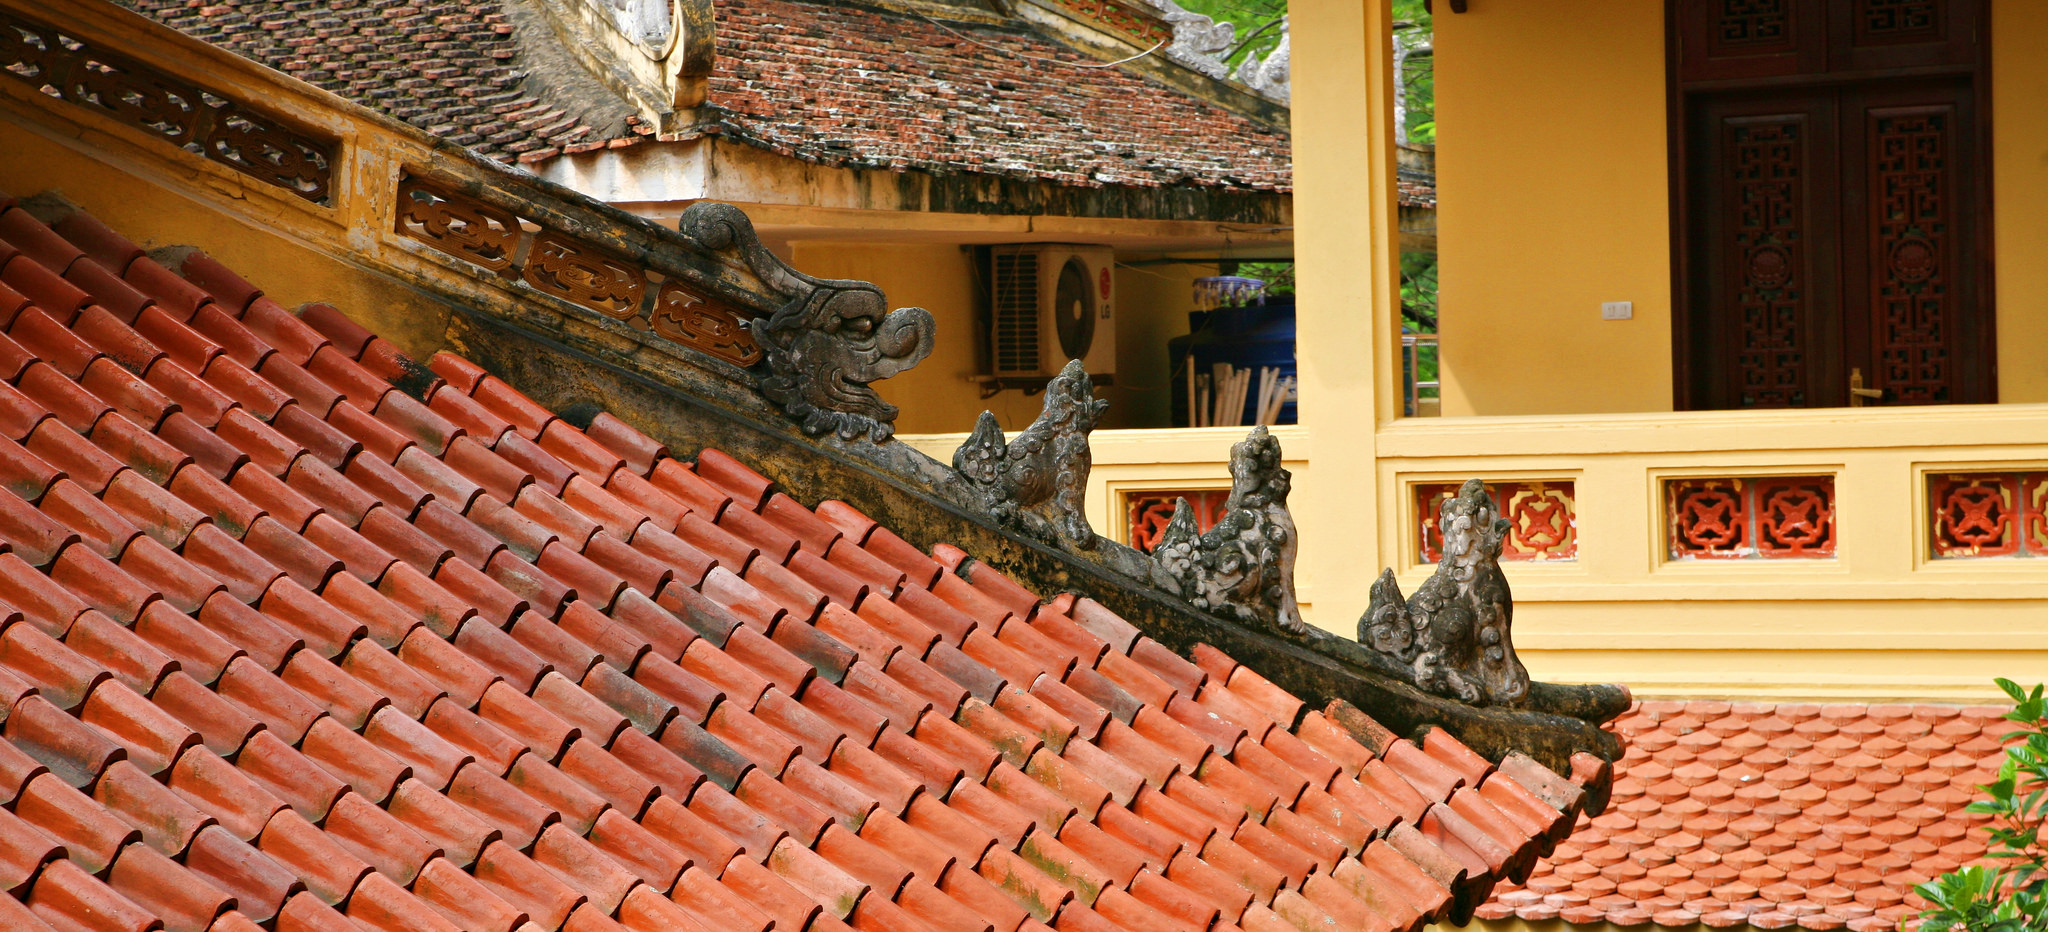 Roof ornamentation at Quan Su Pagoda, Hanoi